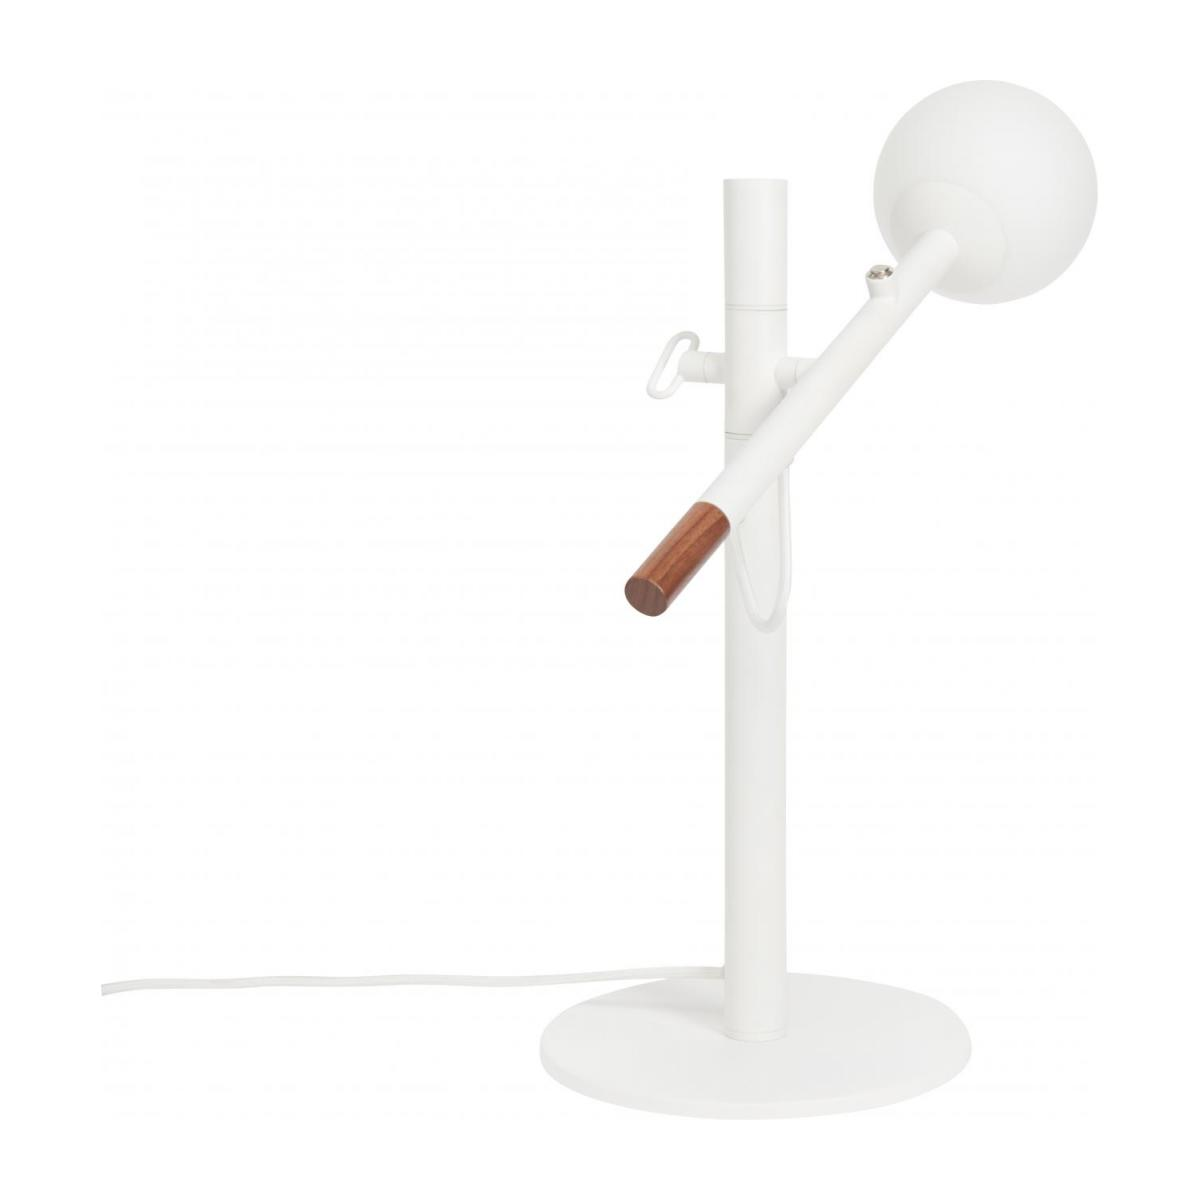 Metal and wood table lamp, white - Design by Gaston Lobet n°4